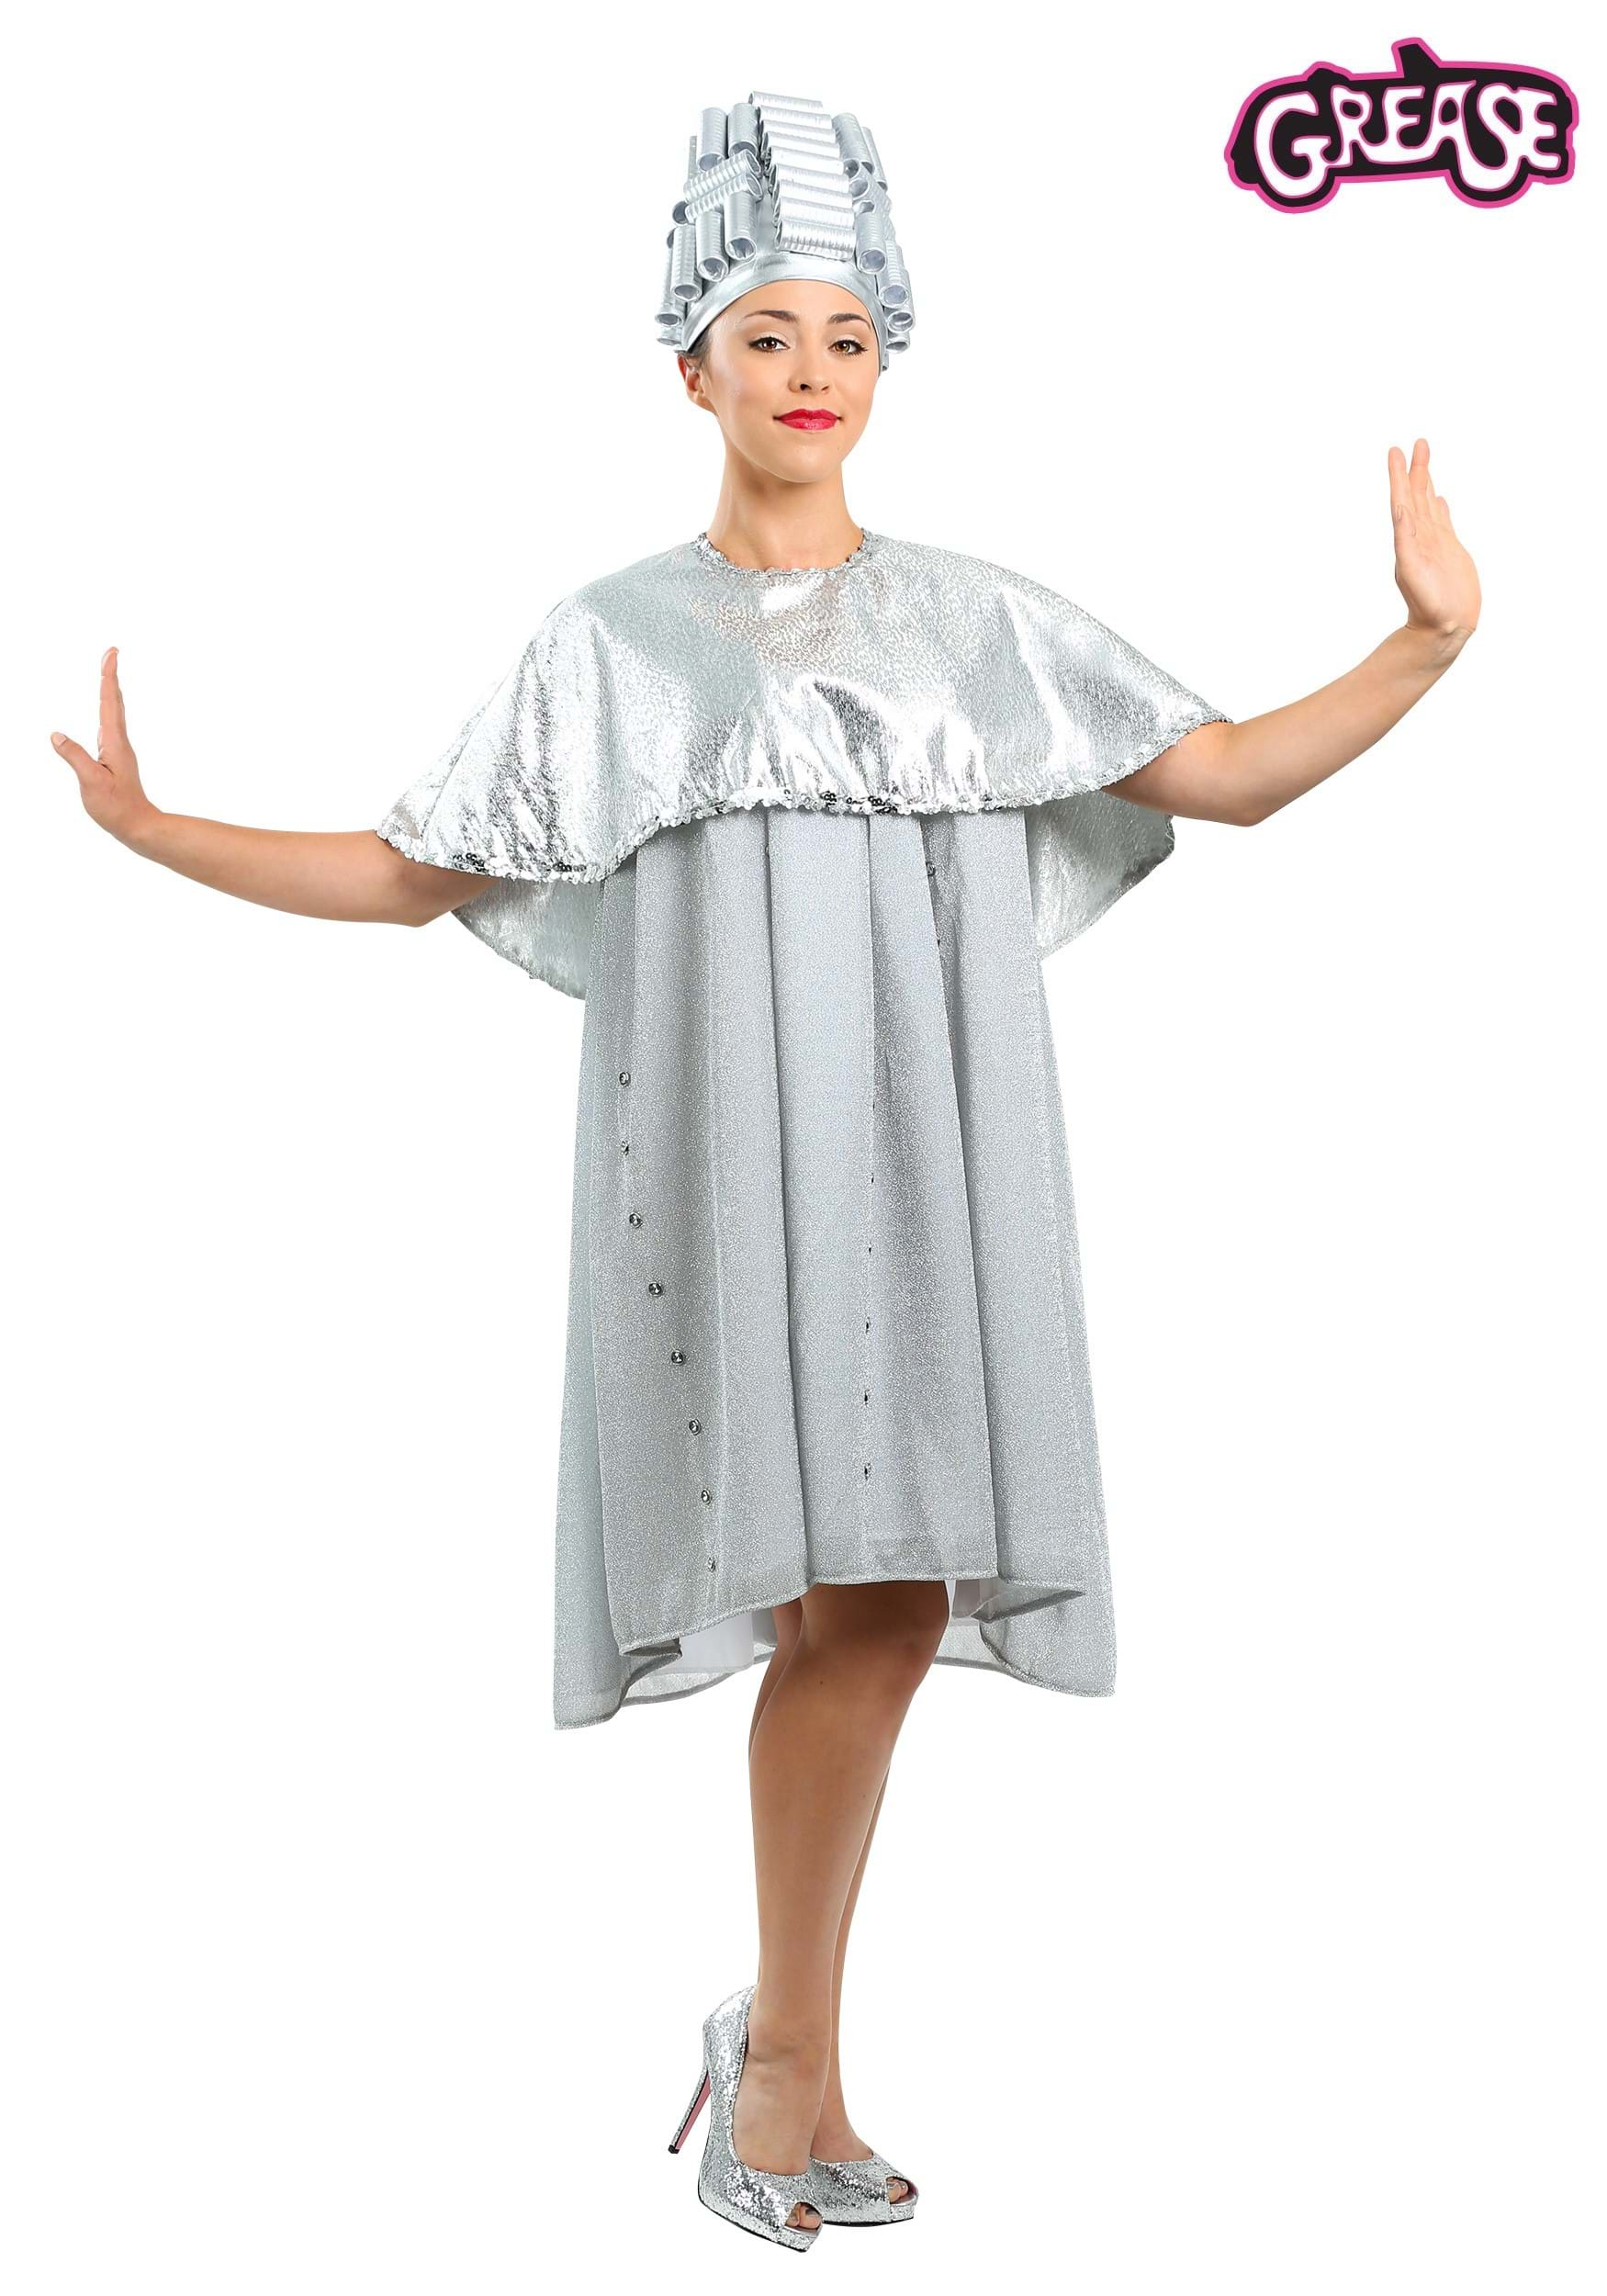 Grease Beauty School Dropout Costume for Women